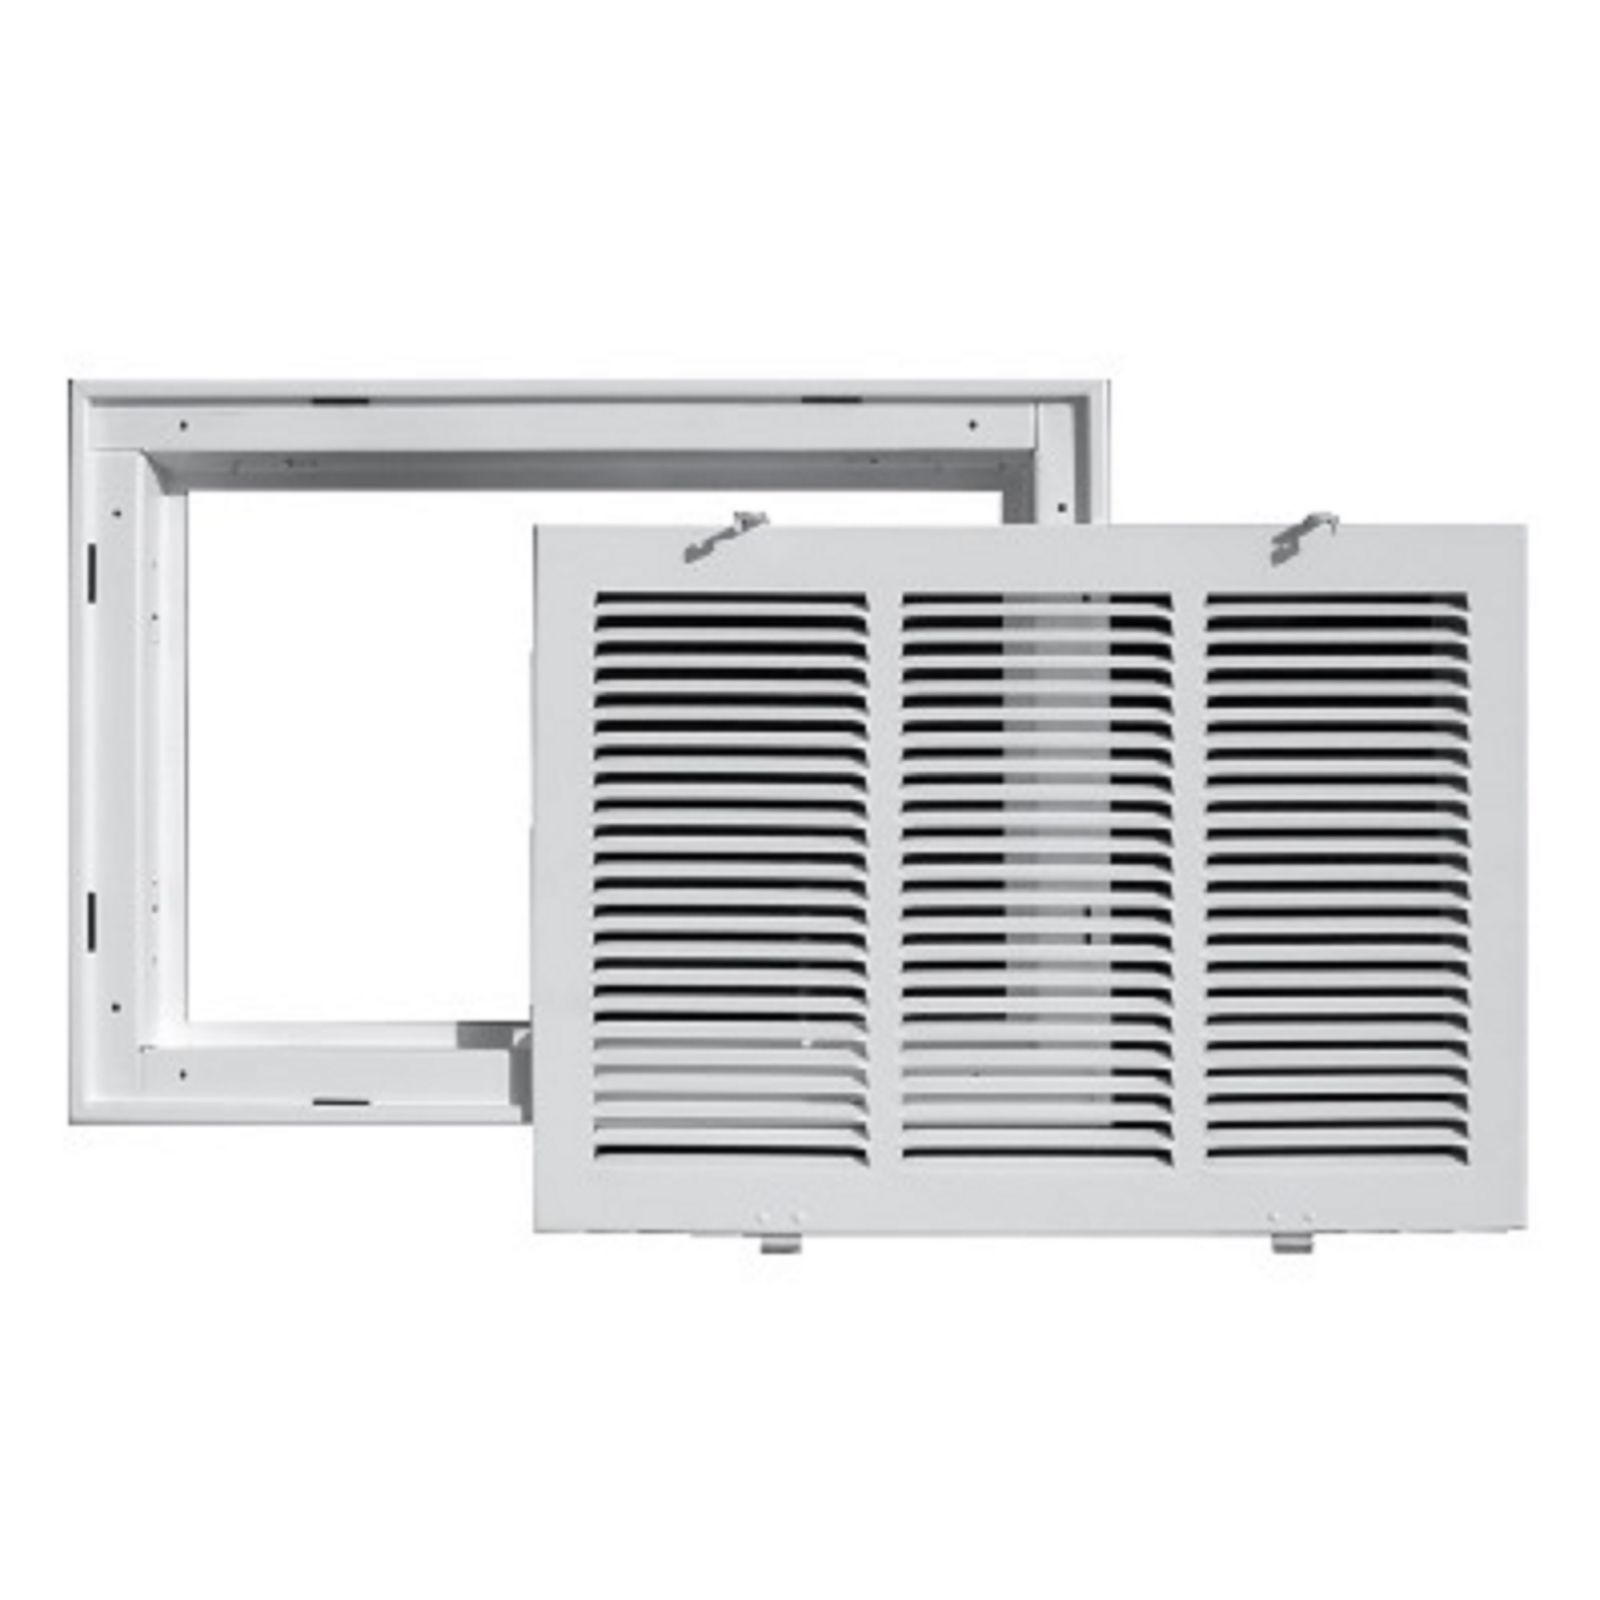 "TRUaire 190RF 25X20 - Steel Return Air Filter Grille With Removable Face, White, 25"" X 20"""